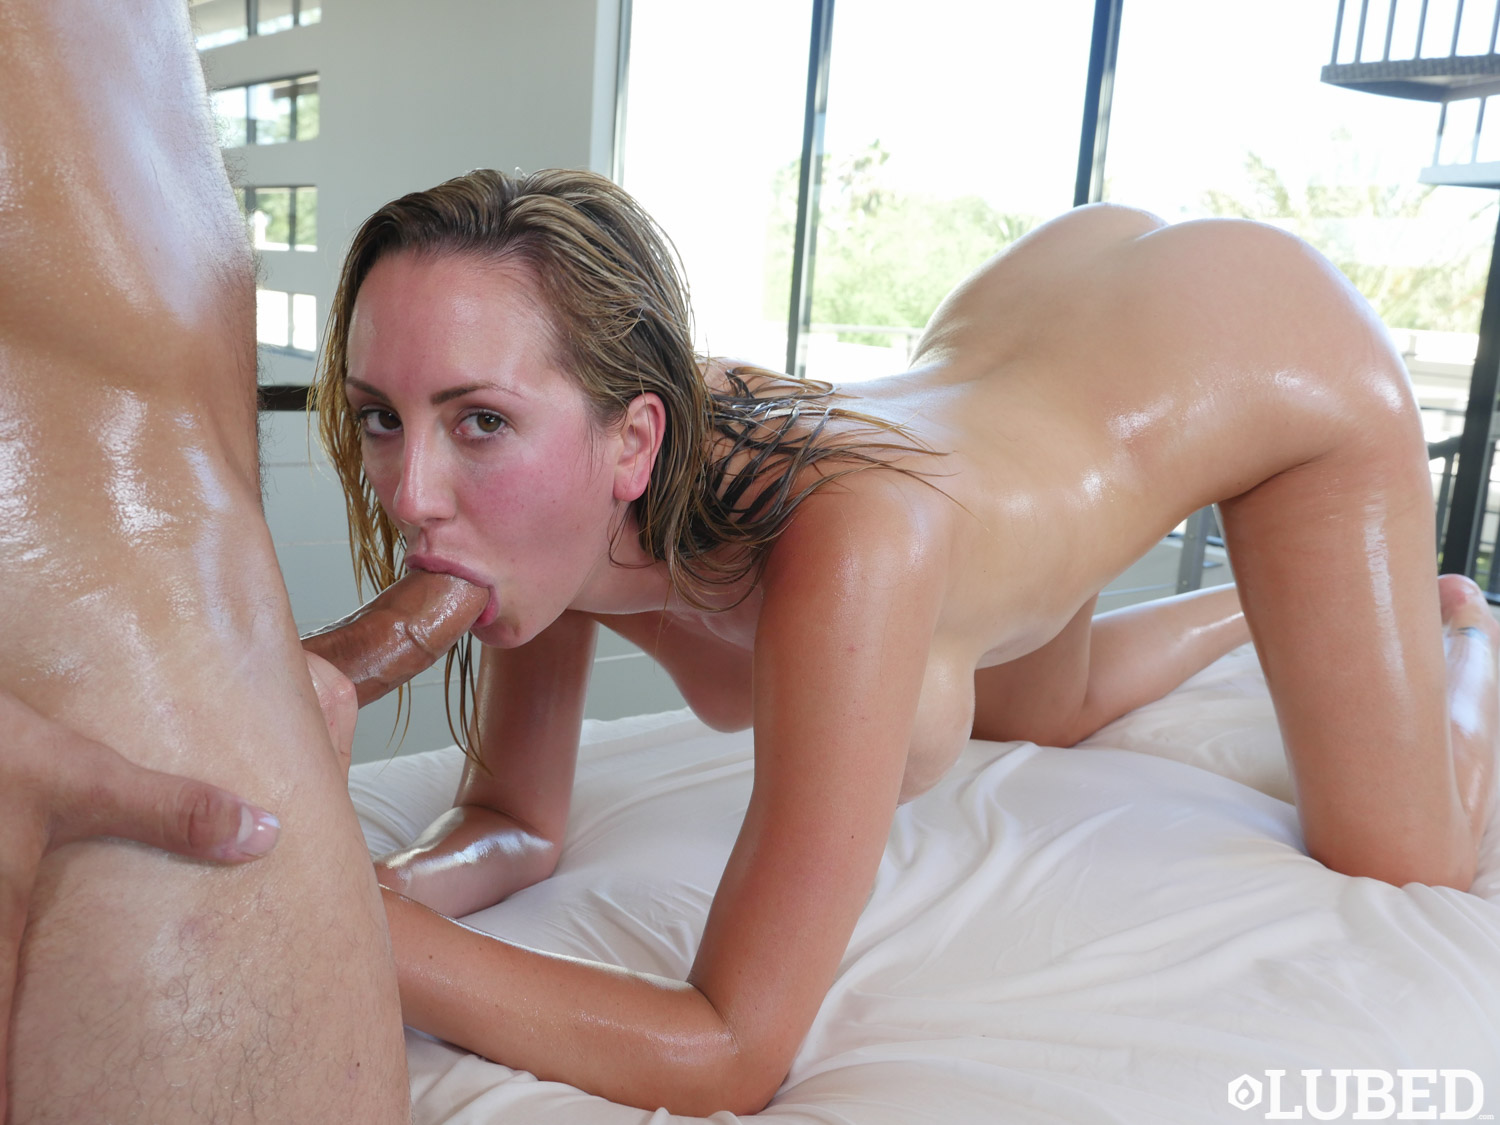 Katrina jade gets messy facial cum gift from monster dick 7